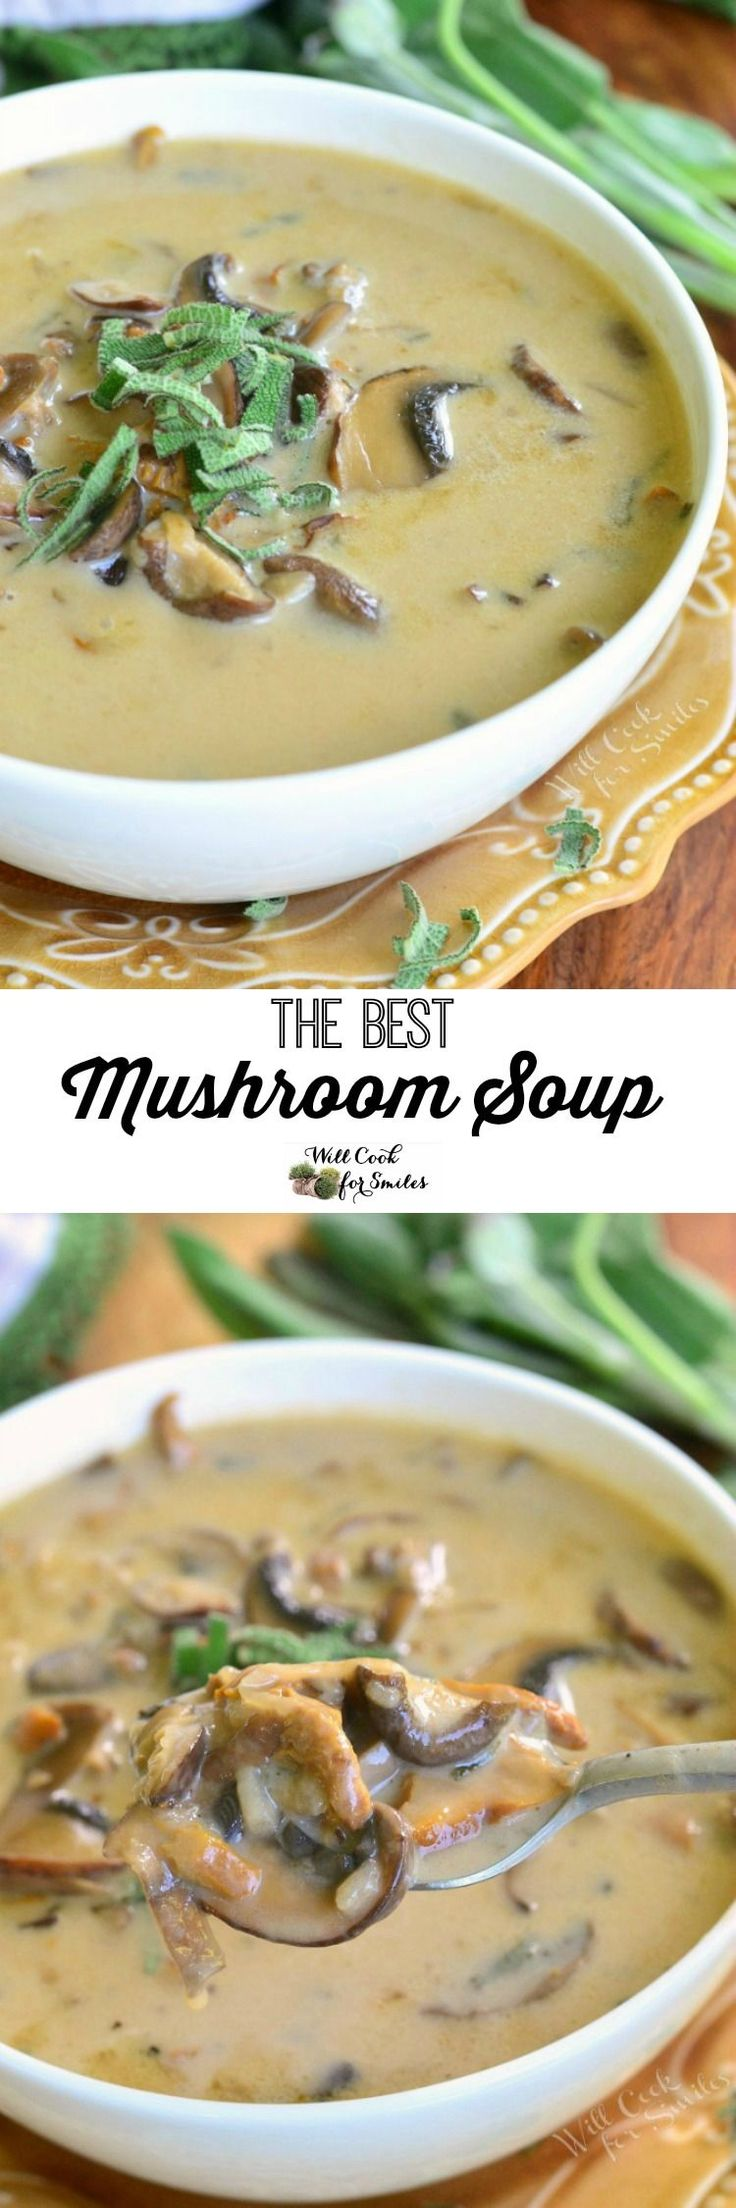 The BEST Mushroom Soup. This creamy soup is made with three types of mushrooms and fresh sage. It's SIMPLE, hearty and guaranteed to please every mushroom lover.: